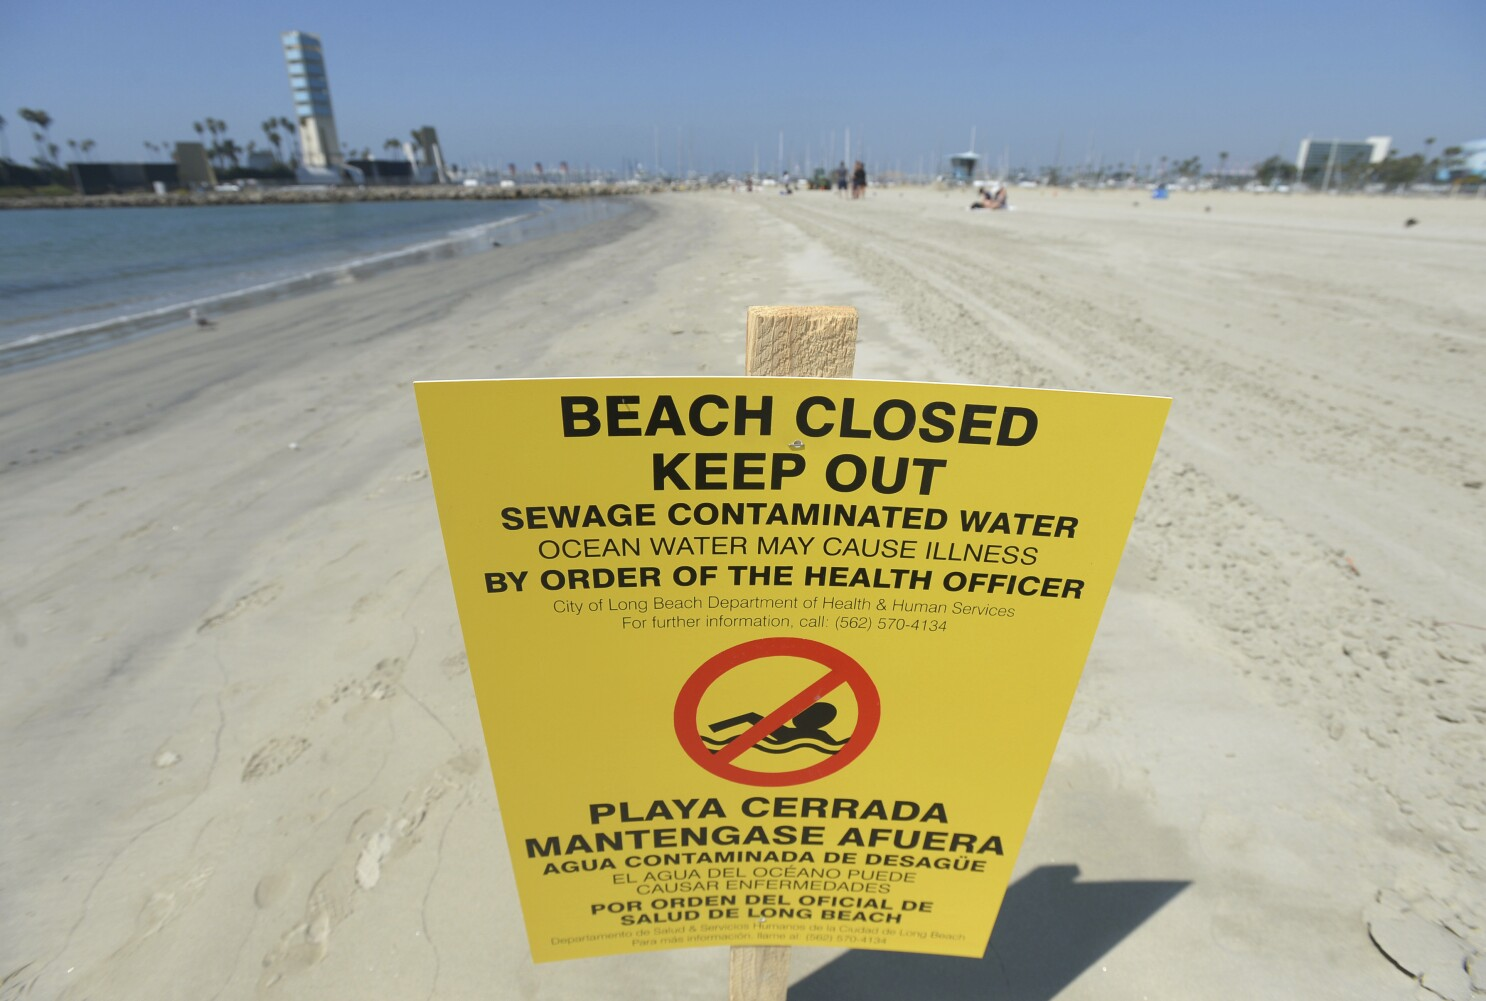 Weekend Sewage Spill Closes Shoreline In Long Beach The San Diego Union Tribune